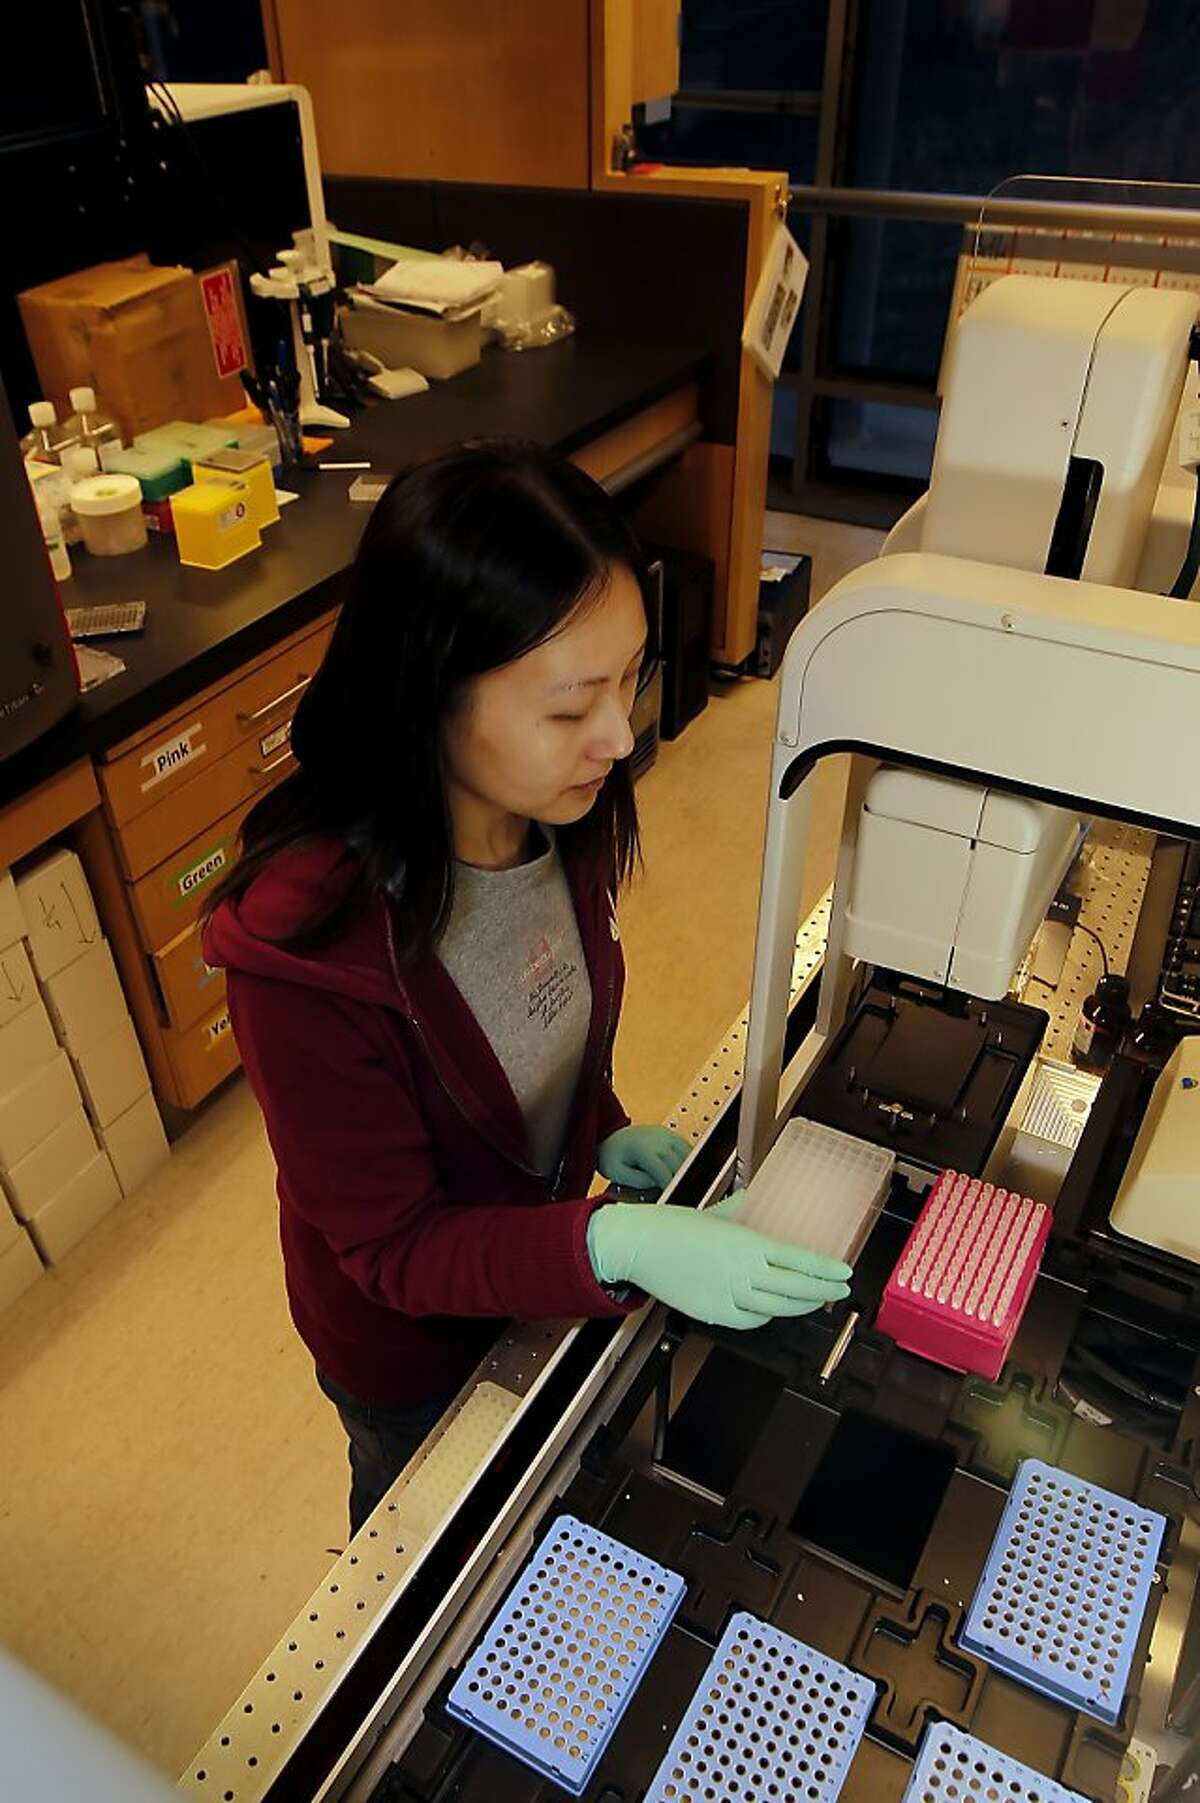 Research associate Eunice Wan on an Automation Workstation where much of the data was collected, in San Francisco, Ca. on Friday Nov. 16, 2012. Researchers at Kaiser Hospital and UCSF Medical Center have been working together on a project to do analysis on more than 100,000 Northern California members, have announced the first results of their work and found some pretty fascinating genetic results for everything from cholesterol and drug reaction to height and autism.